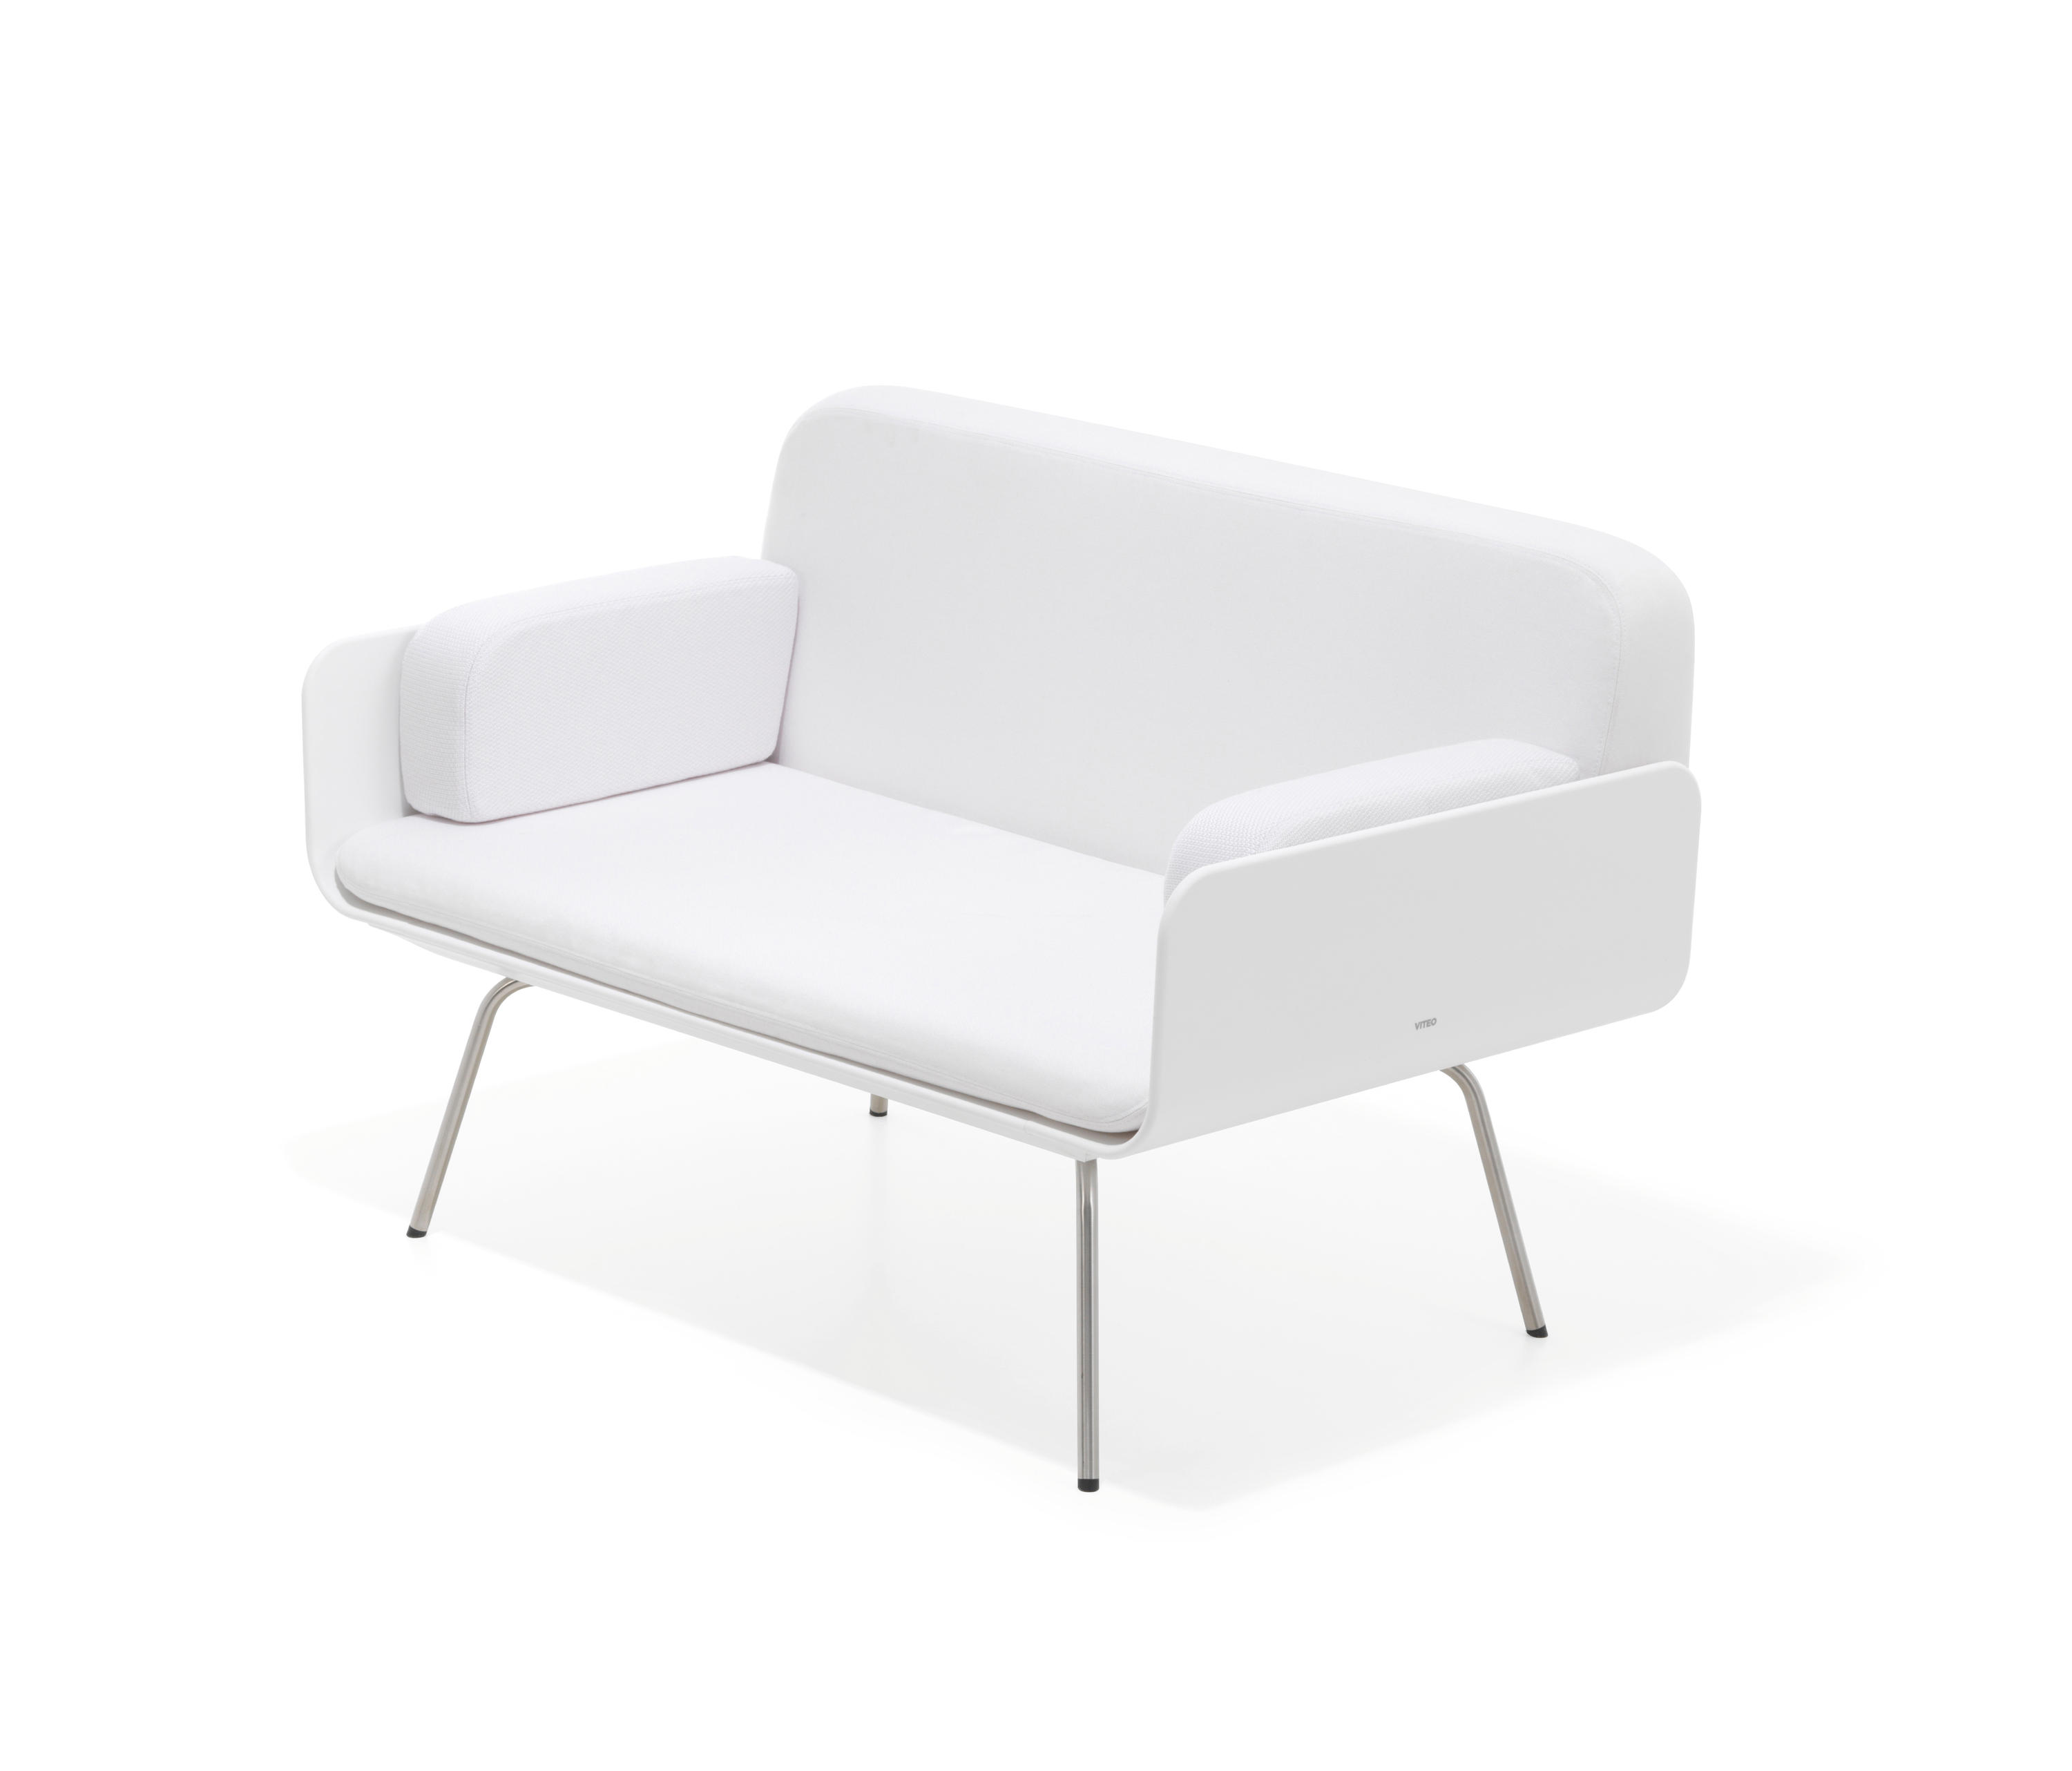 Air Lounge Sessel Air Collection Double Lounge Chair Sessel Von Viteo